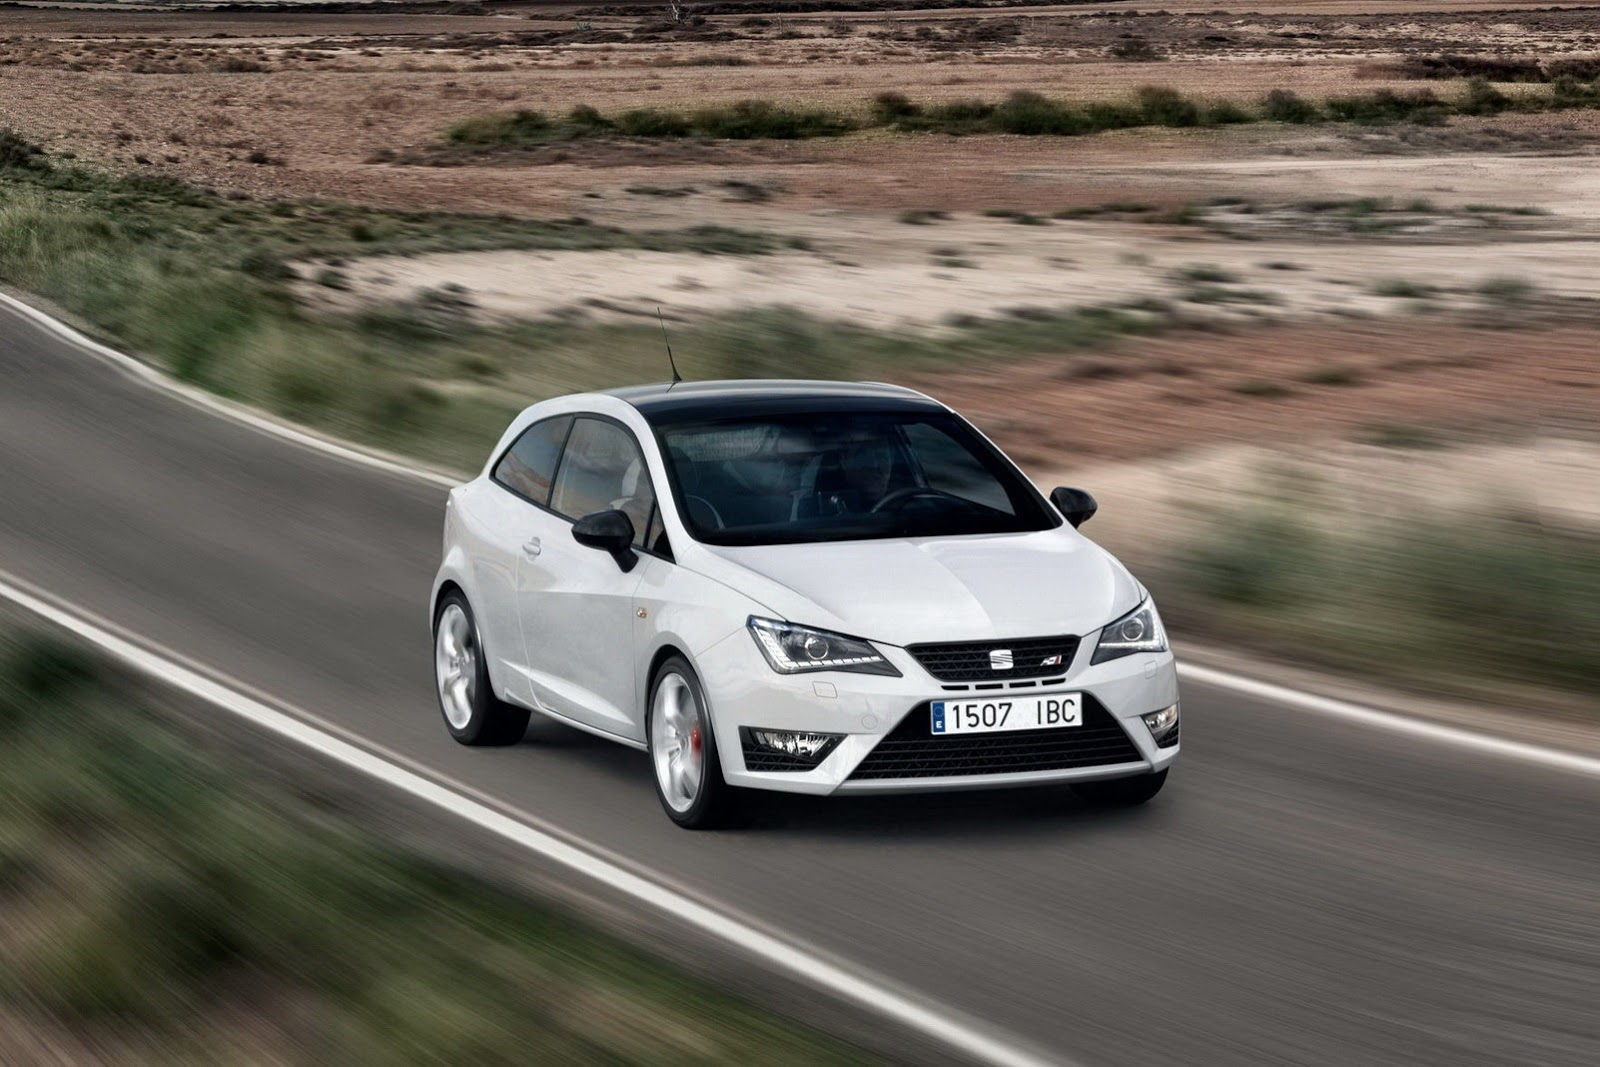 2013 Seat Ibiza Cupra in the spotlight